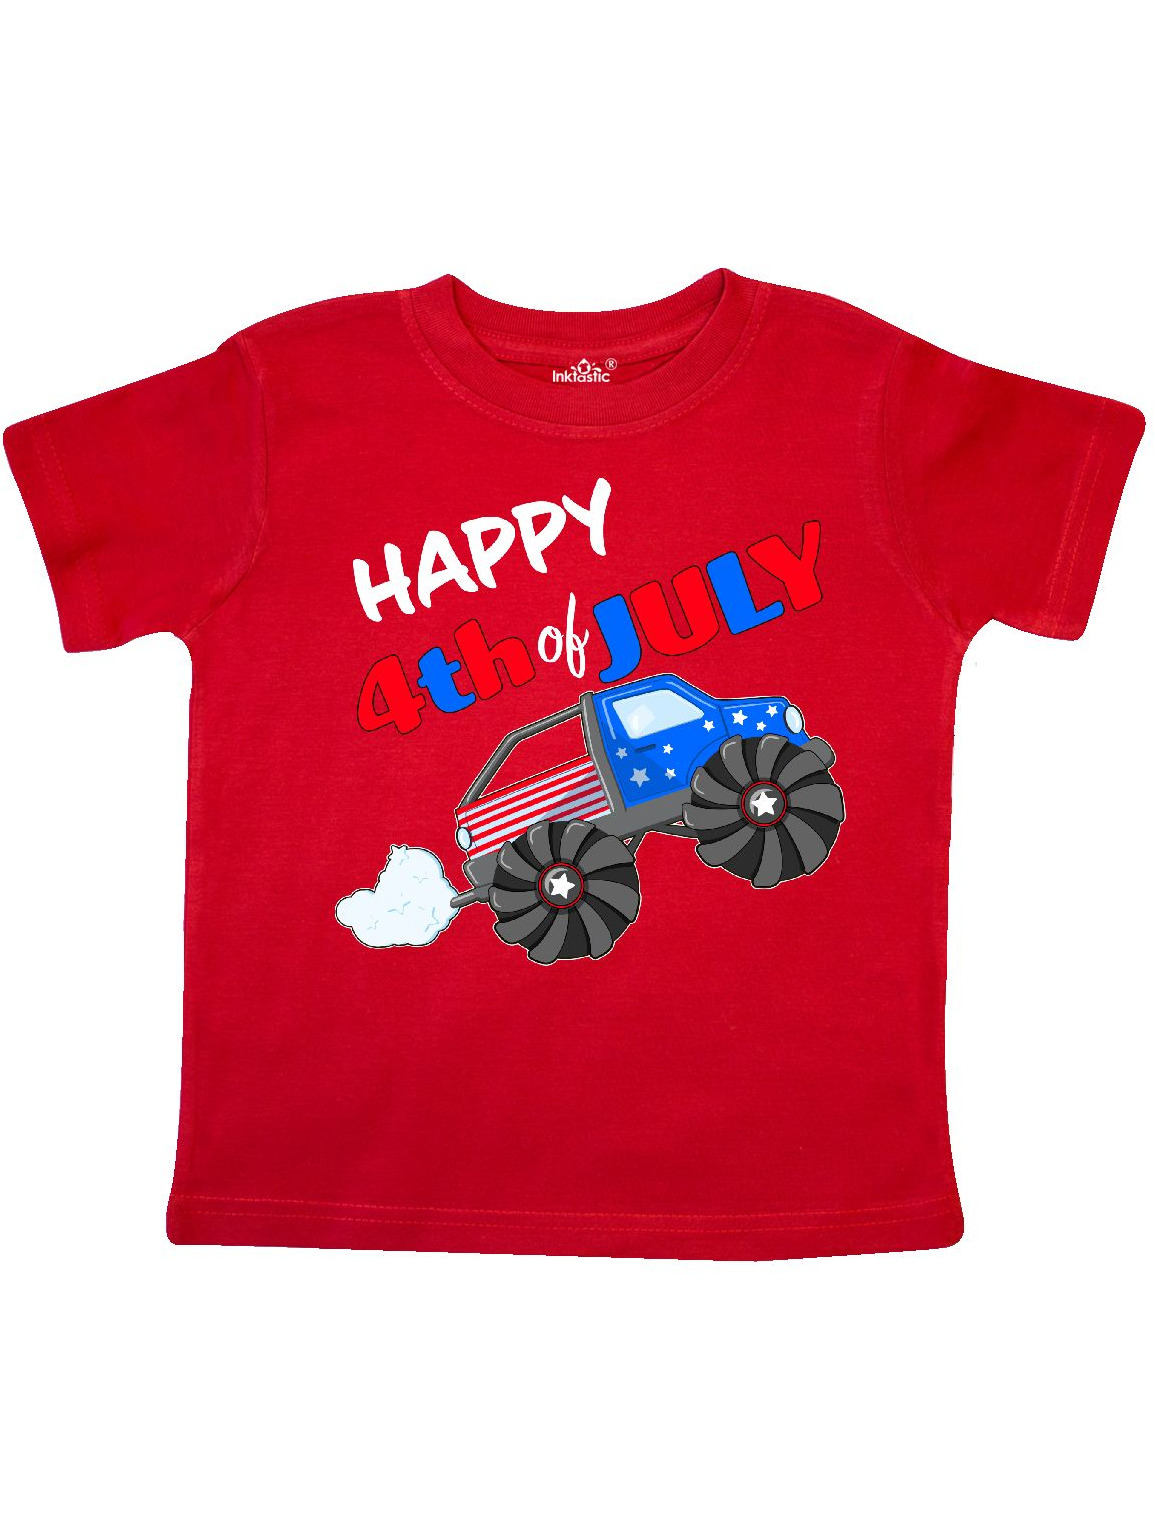 4th Of July Tee Shirts - Sears